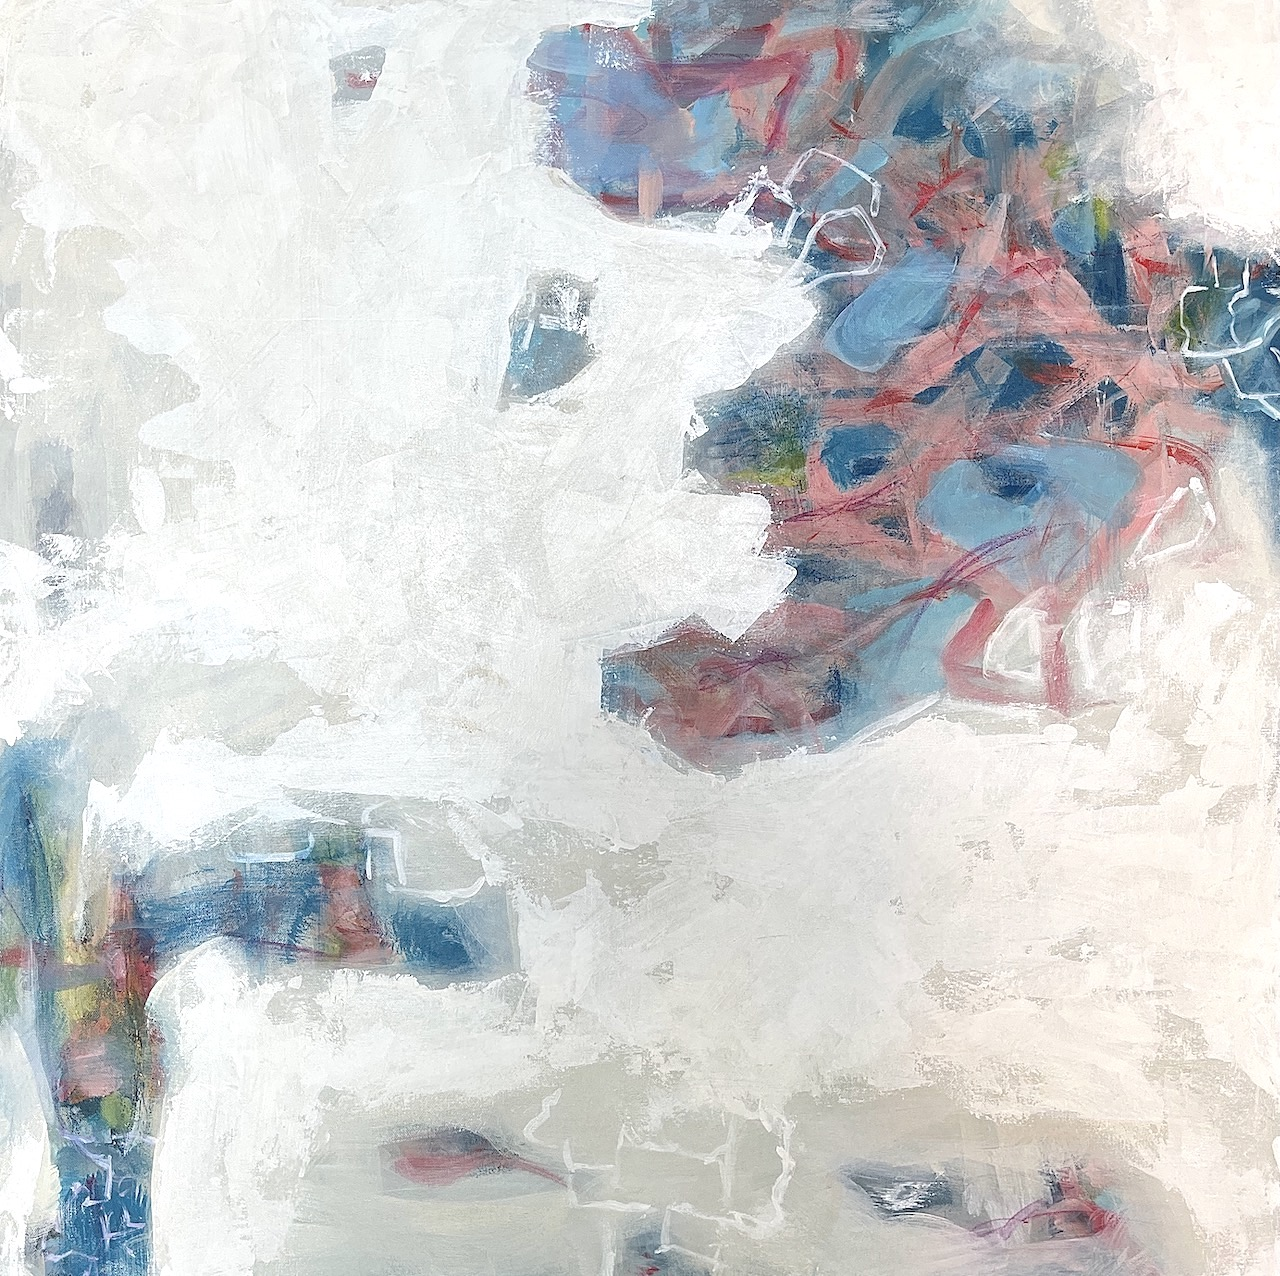 Abstract painting by Pamela Campe